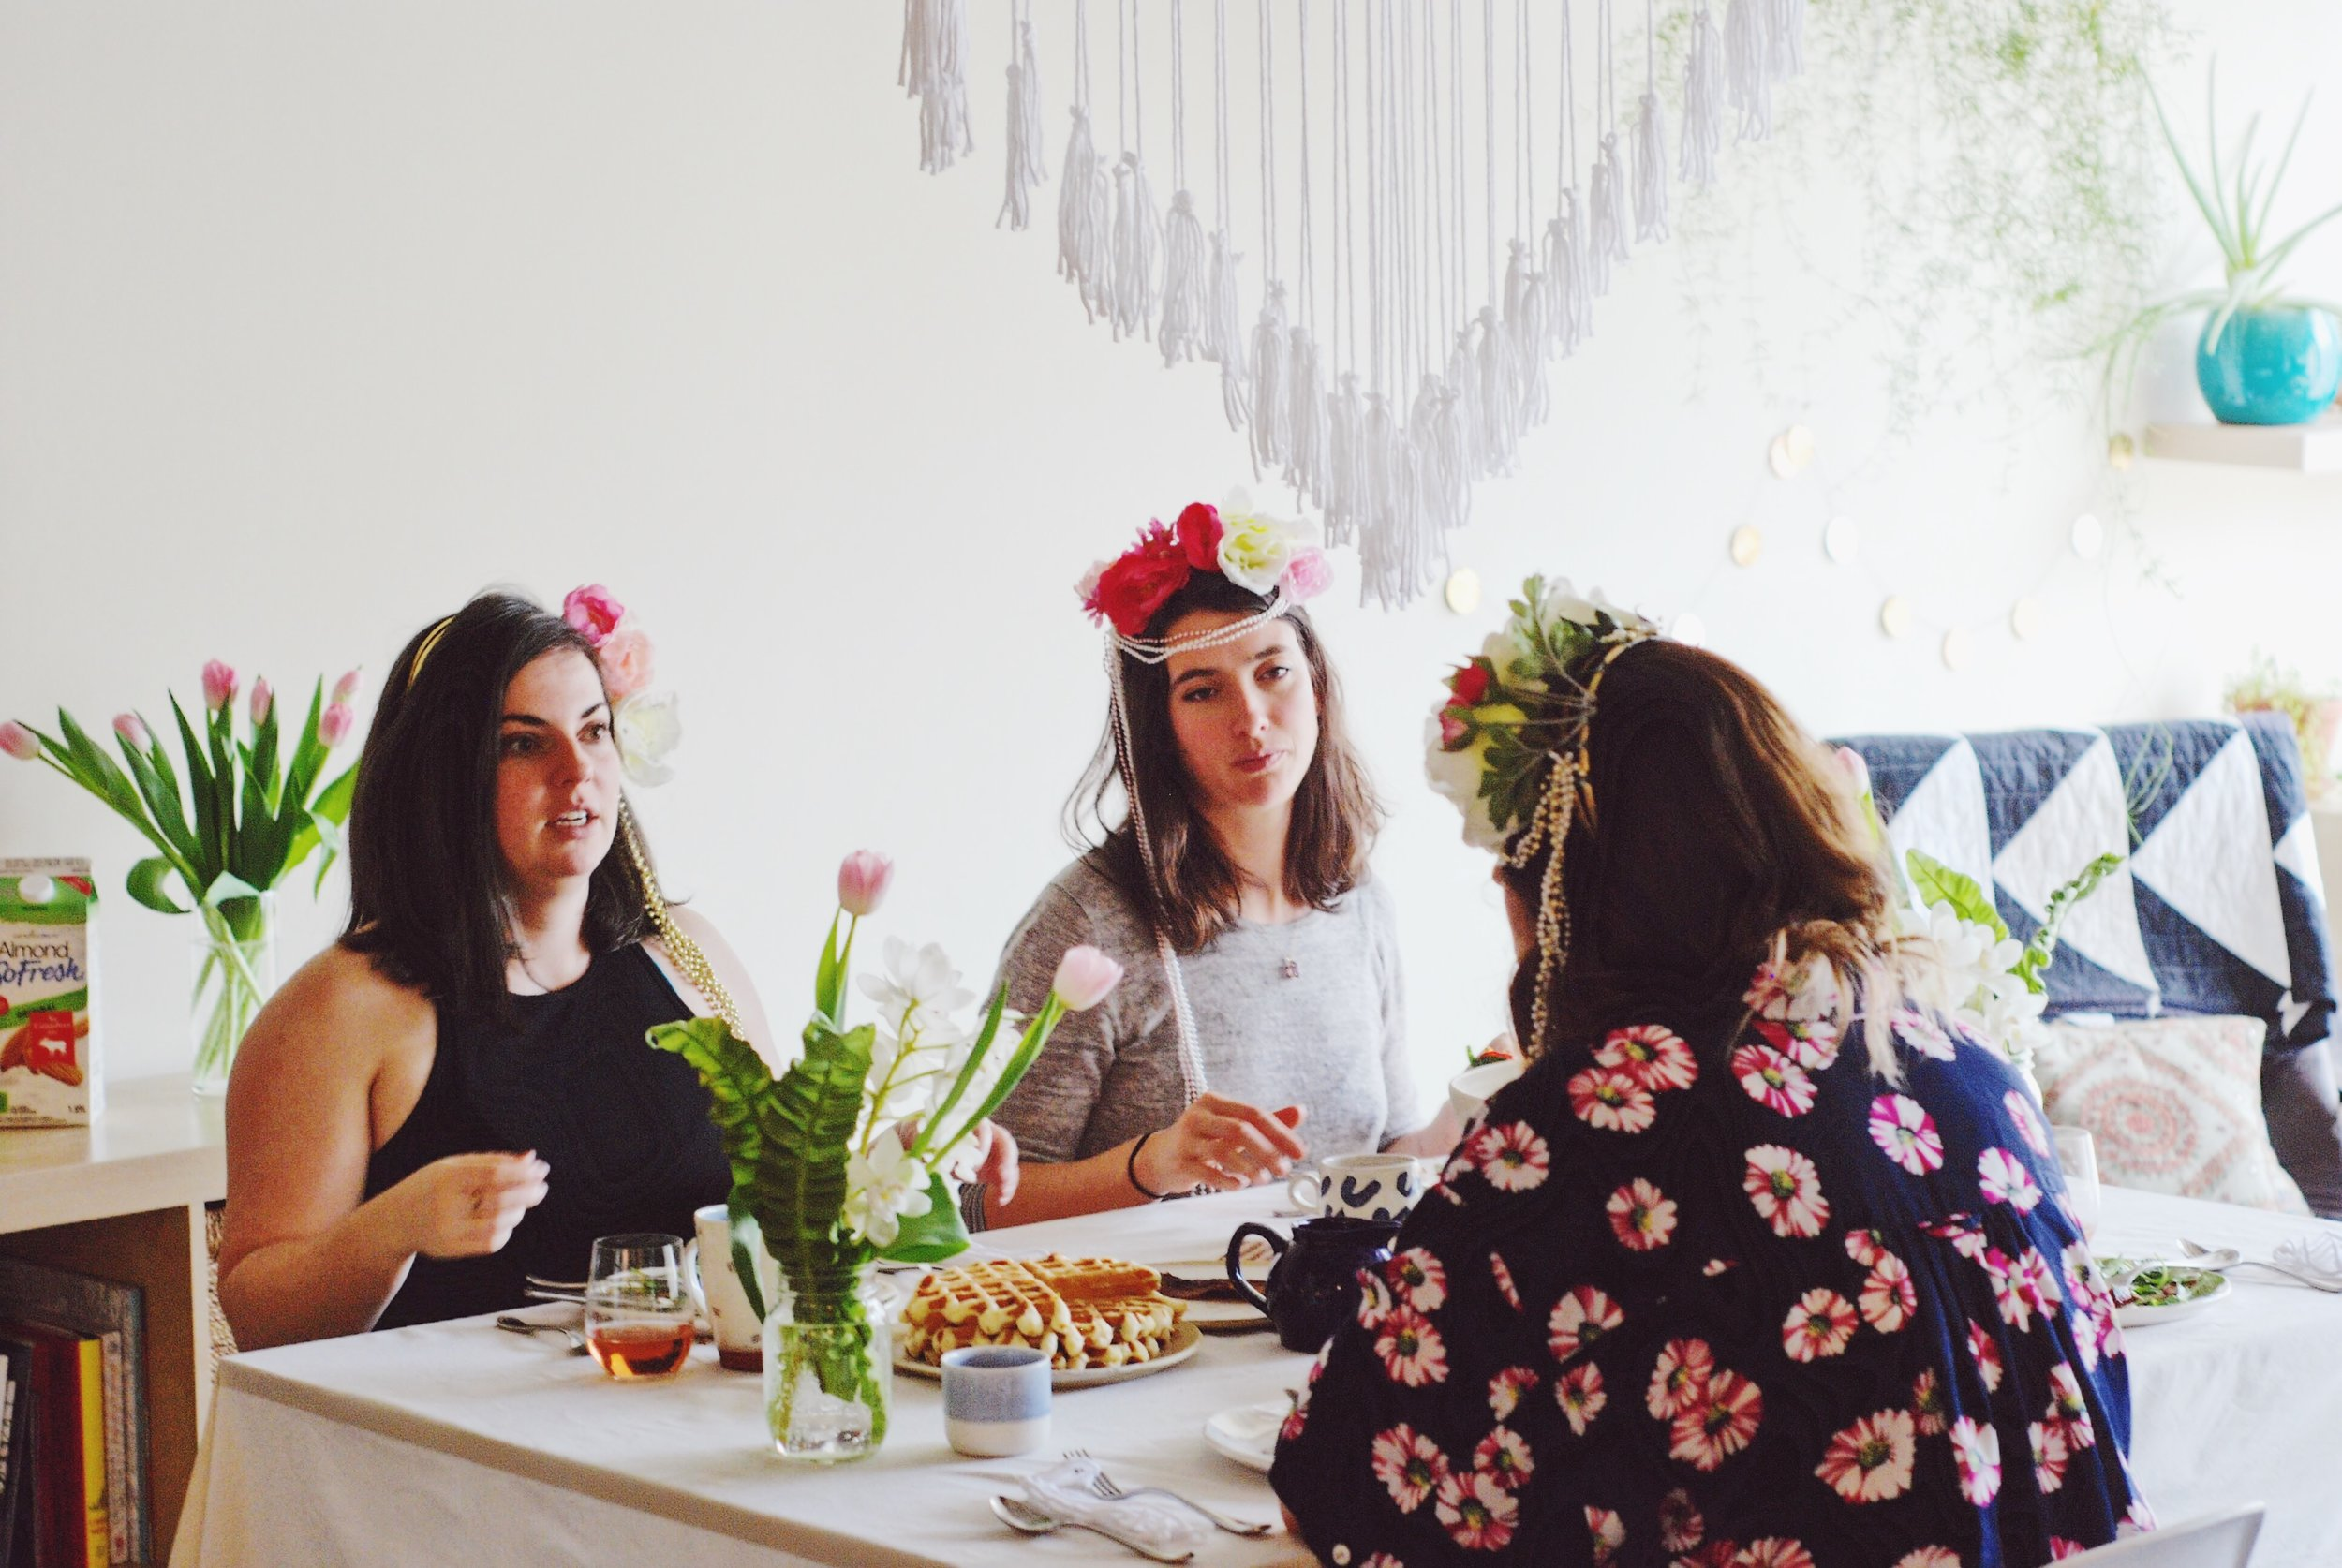 Goddess brunch with Joy the Baker waffles, spinach and strawberry salad, champagne and Livia Sweets lemon tart // macrame hanging + flower crowns